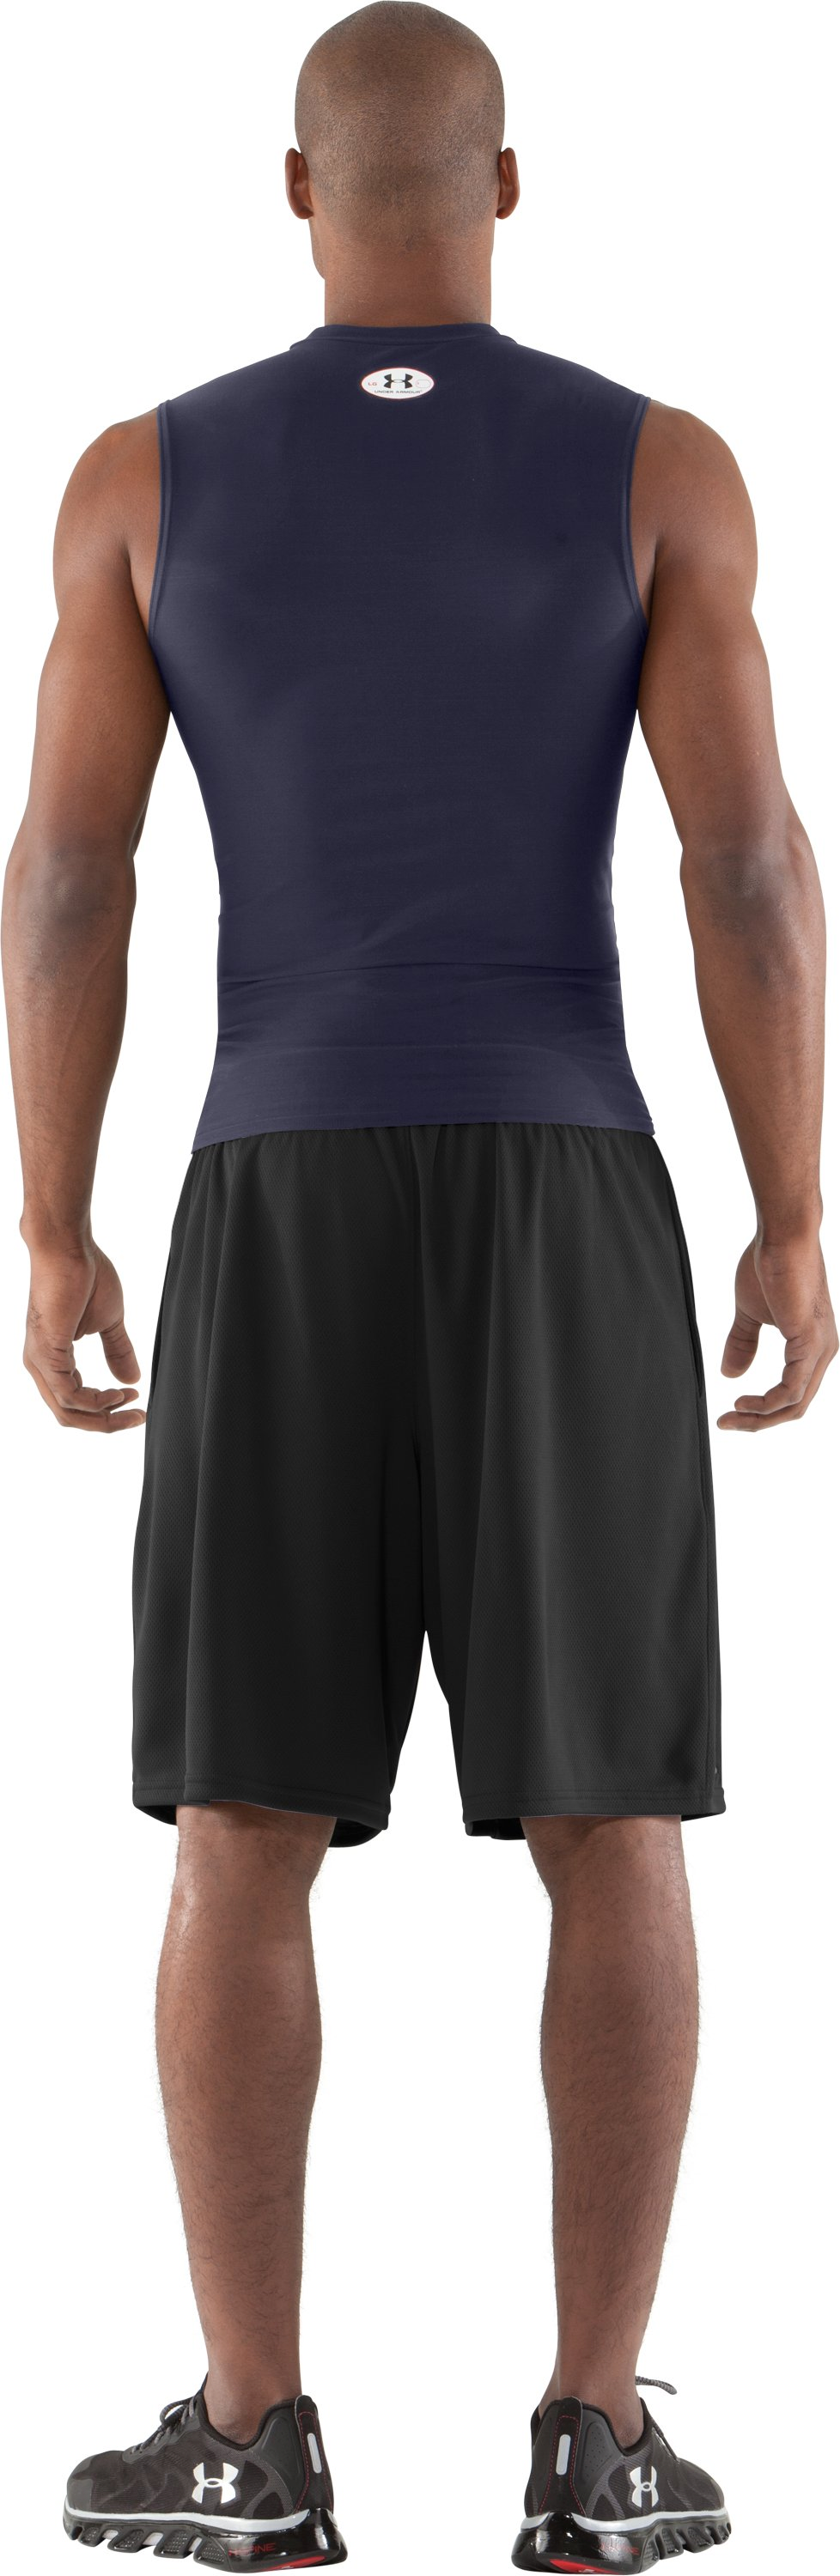 Men's HeatGear® Compression Sleeveless T-Shirt, Midnight Navy, Back